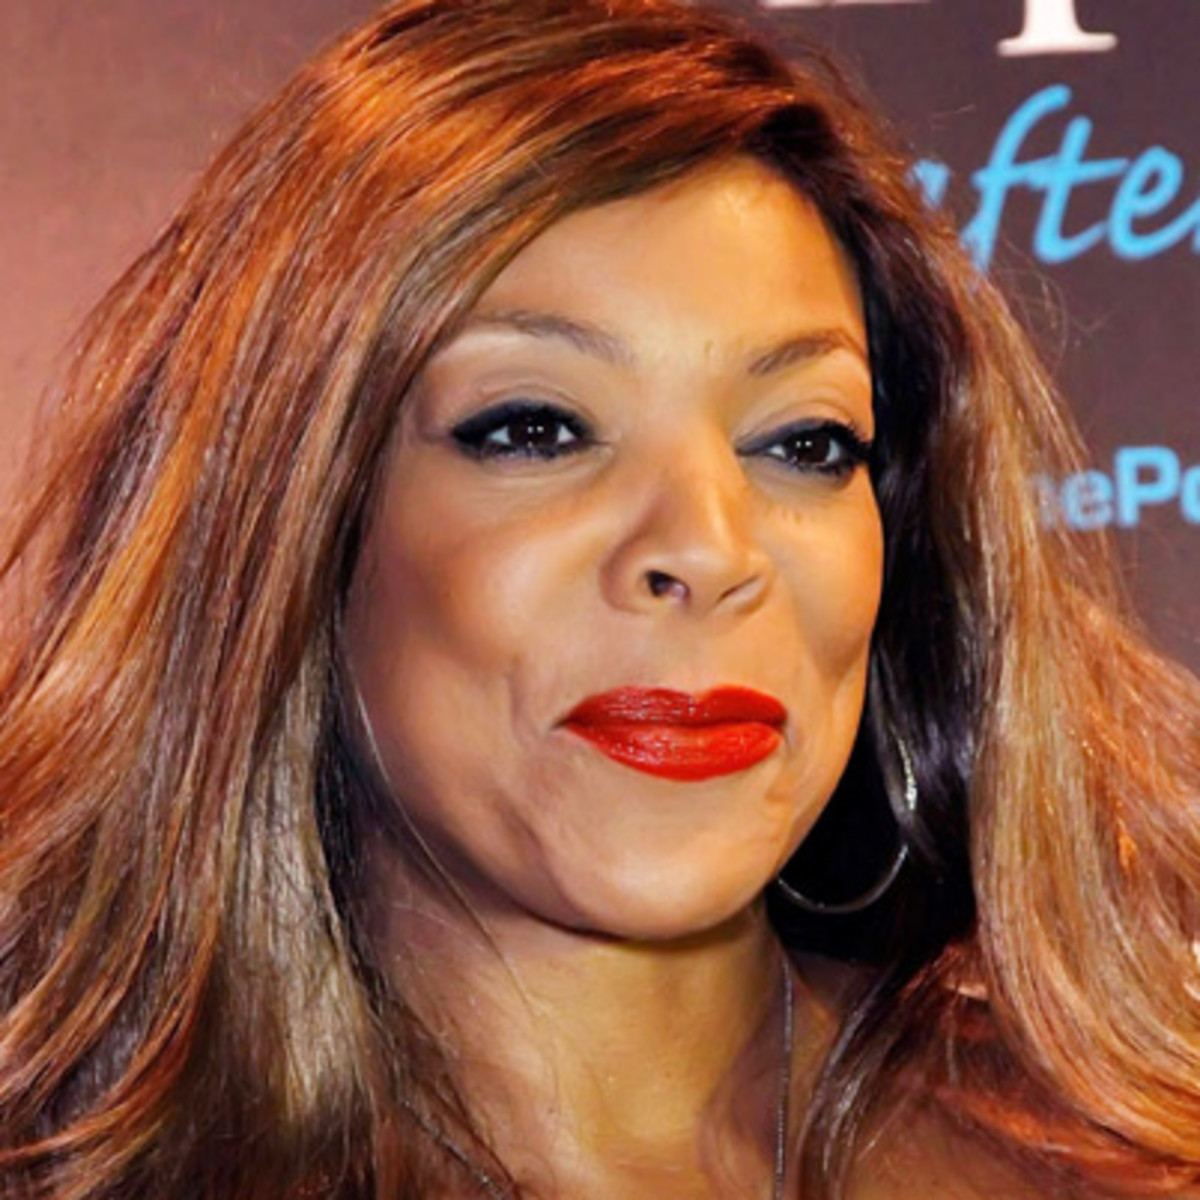 images Wendy Williams (actress)